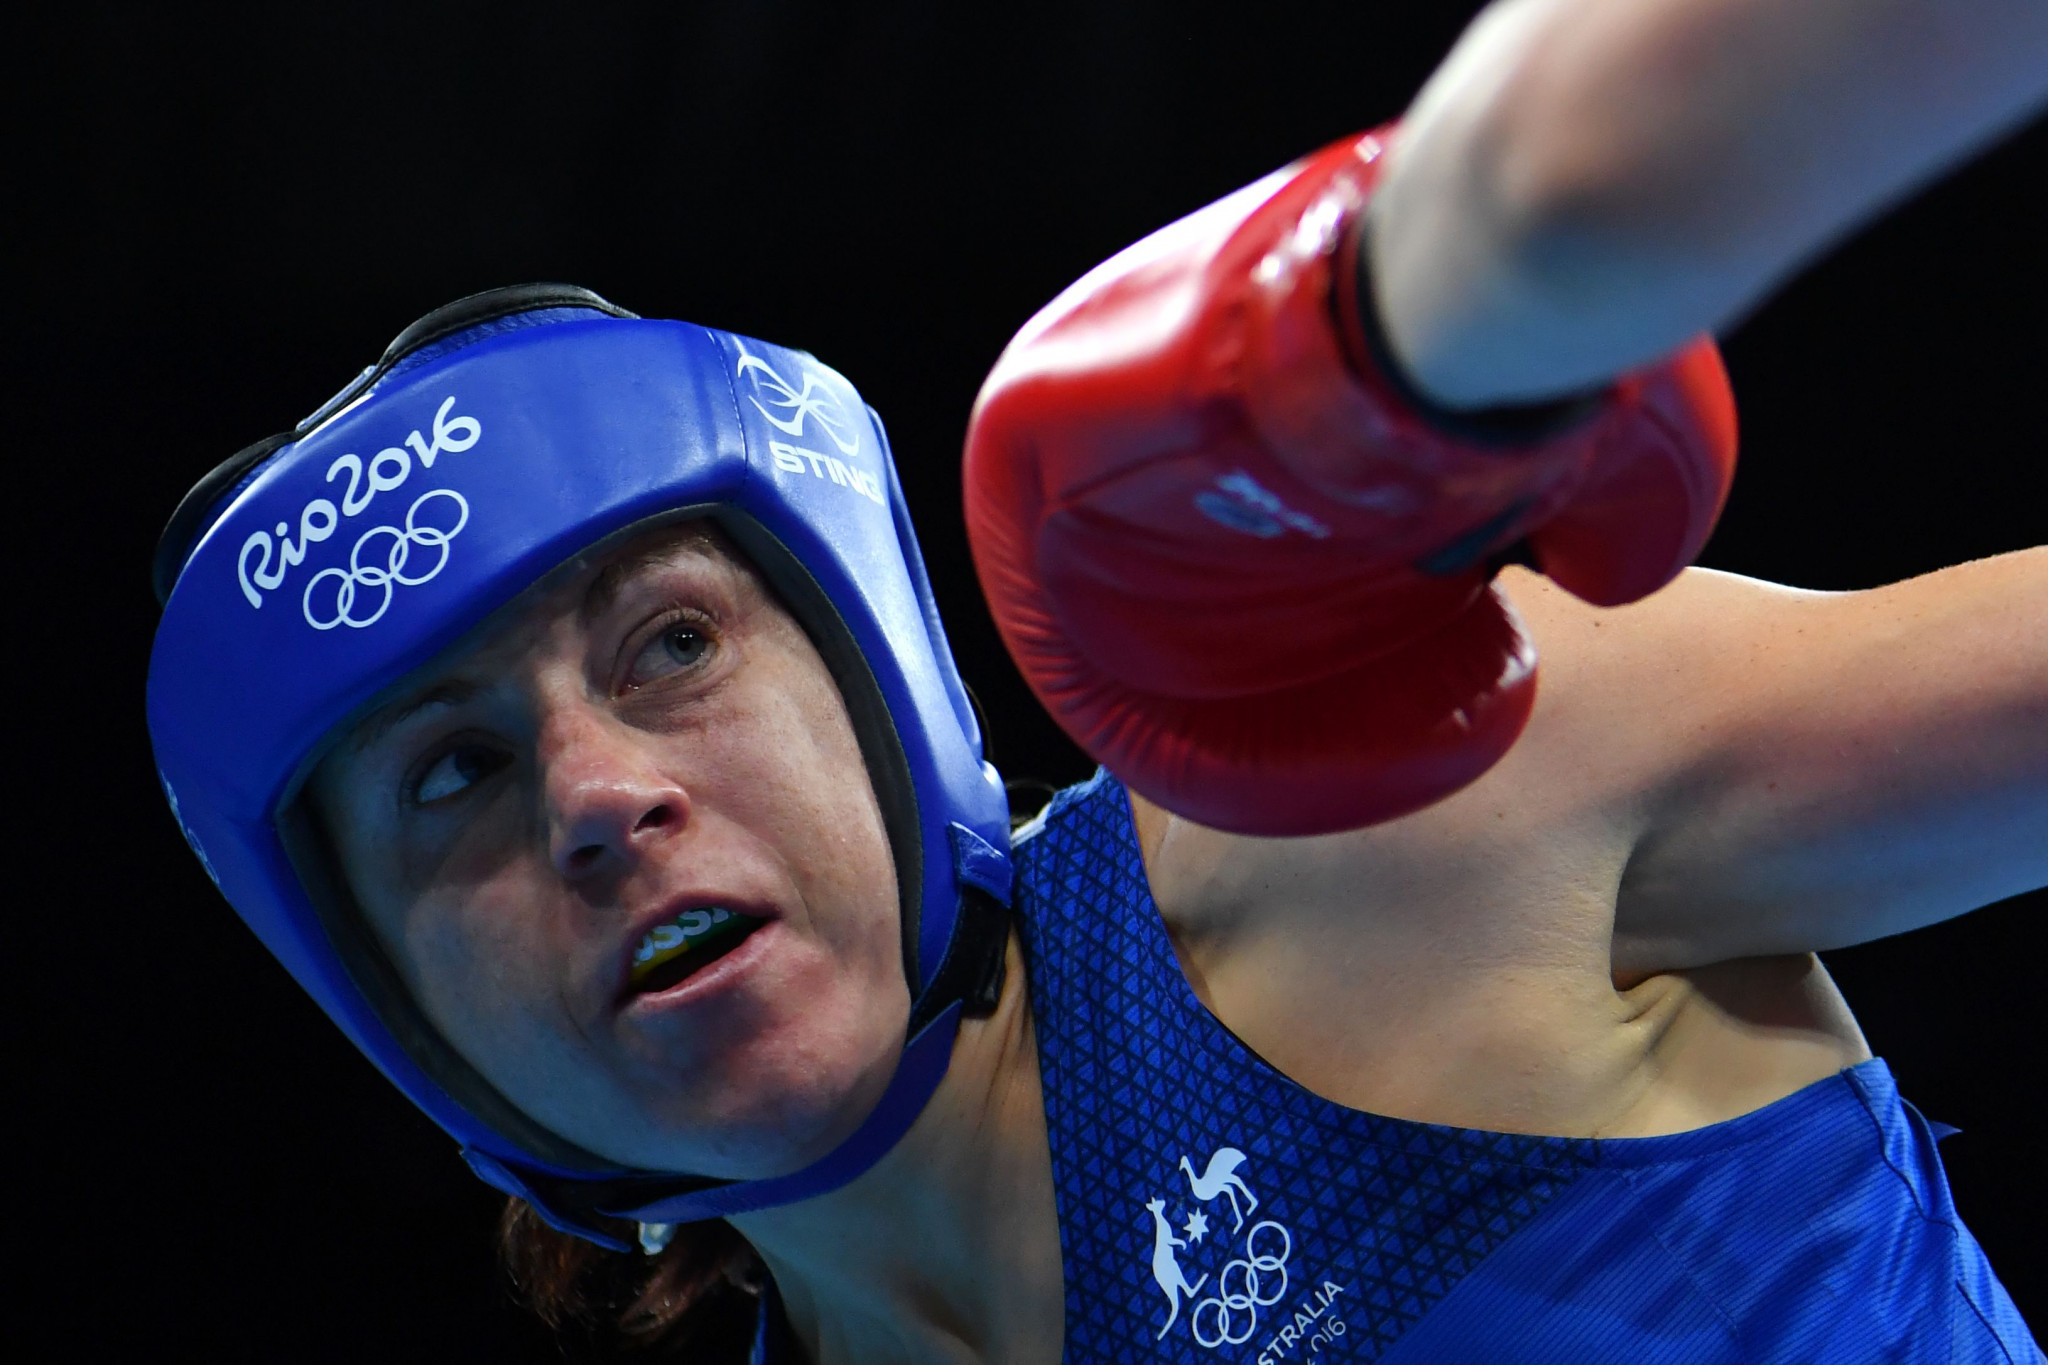 Shelley Watts of Australia was one of three boxers from Oceania to reach the Rio 2016 Olympic Games from a combined Oceania and Asia qualifying event ©Getty Images